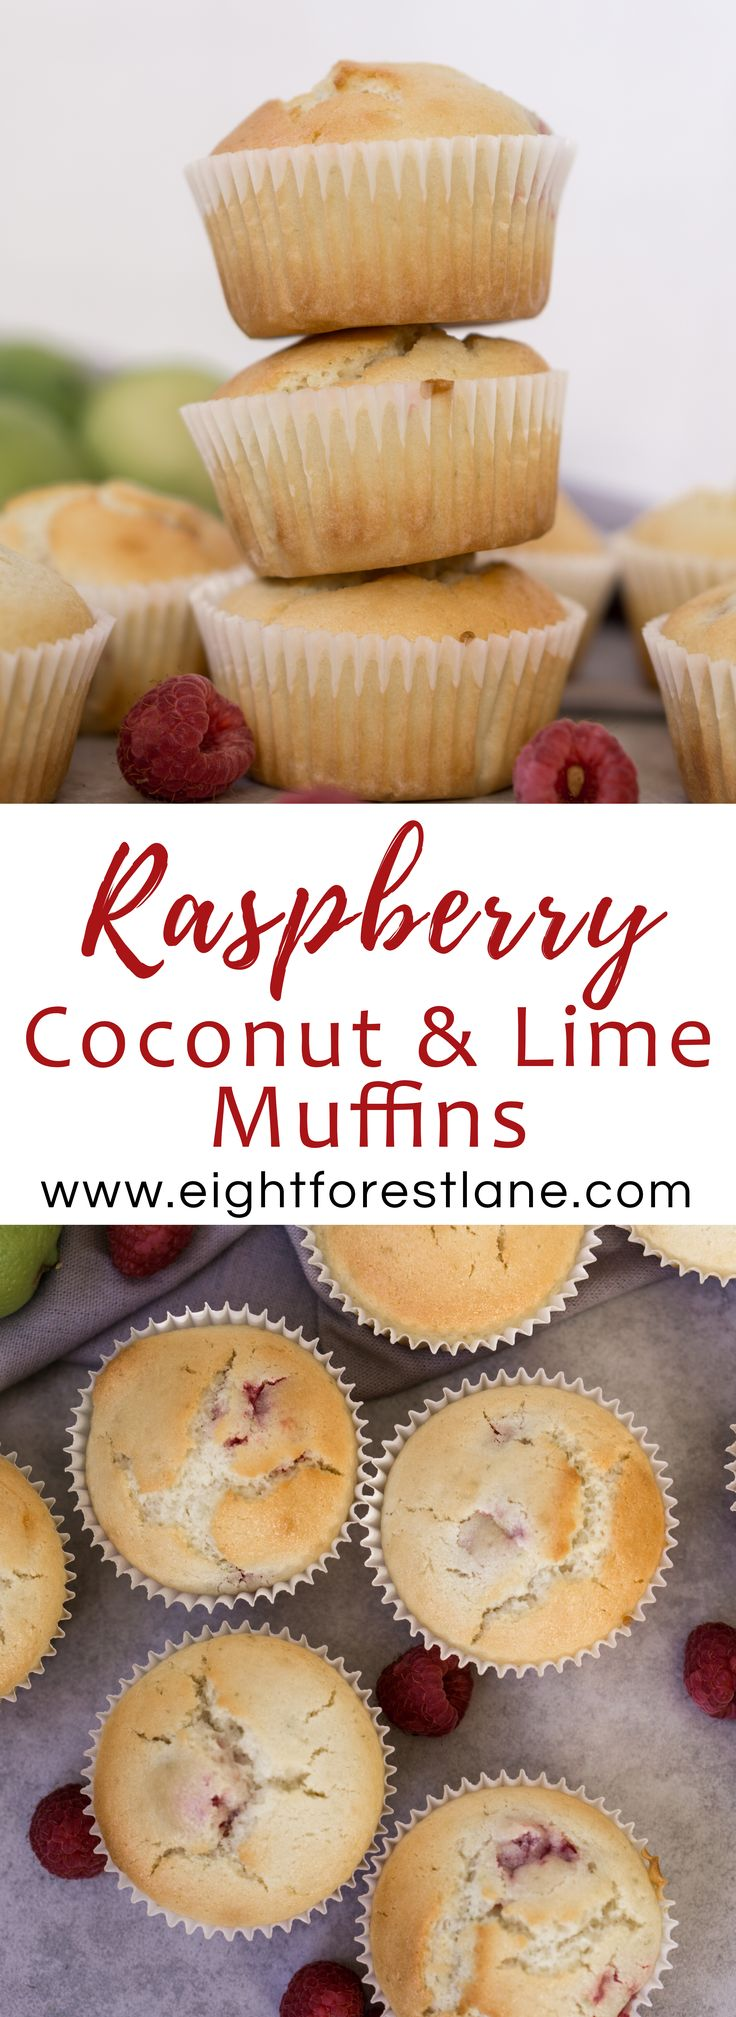 Raspberry, Coconut & Lime Muffins